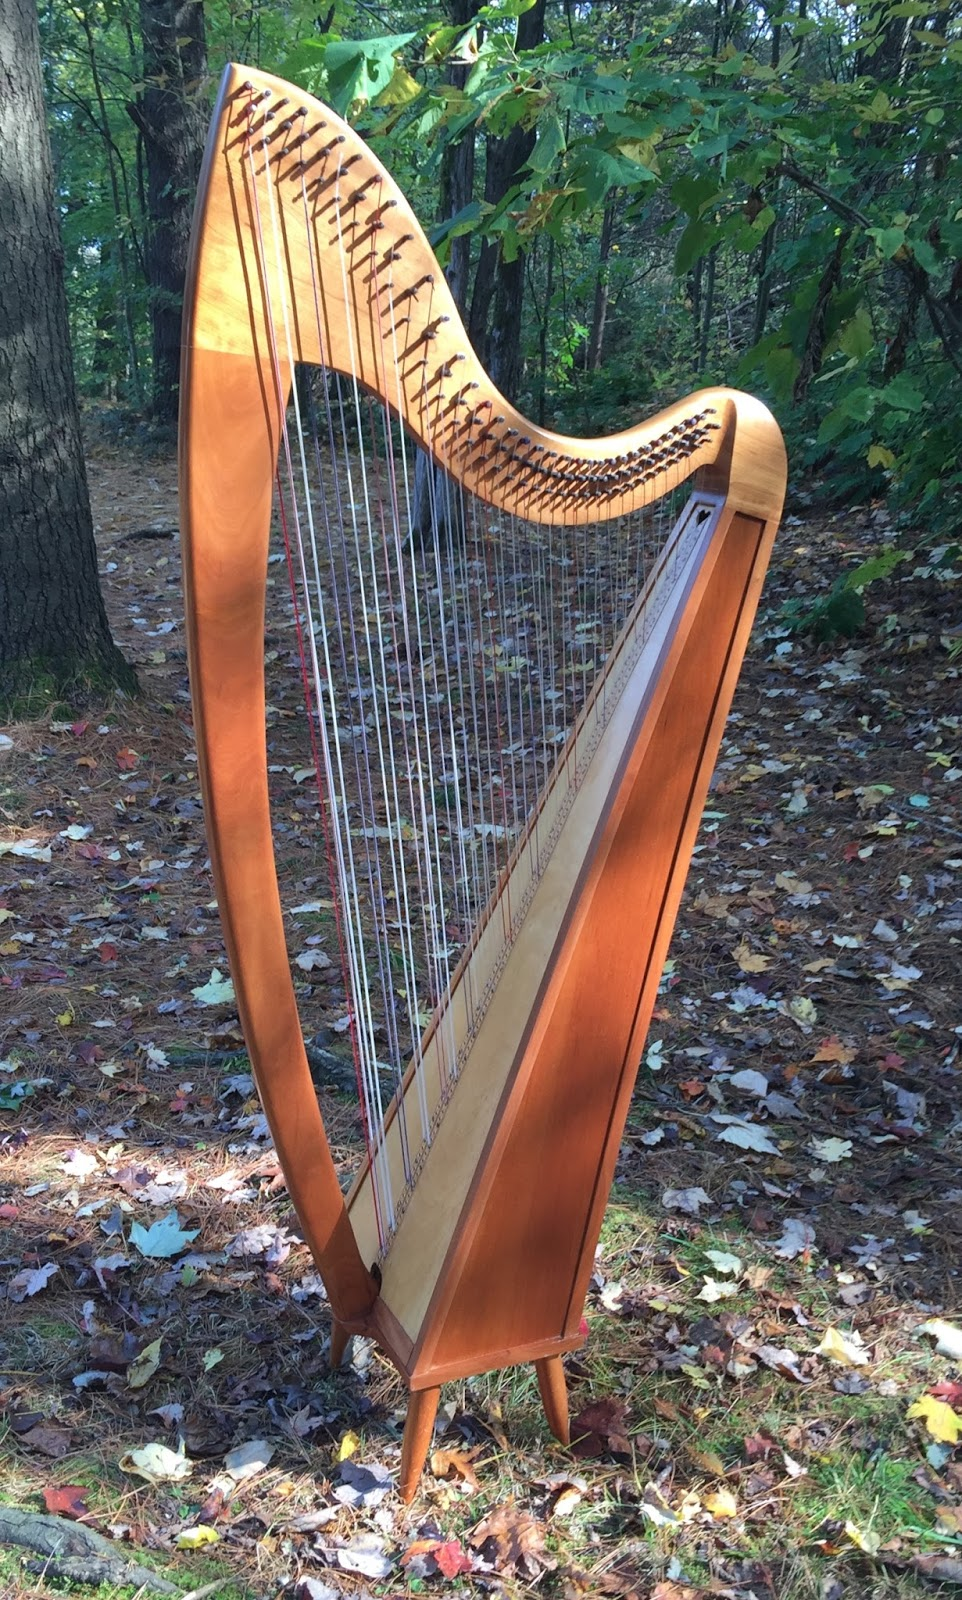 Artful Art and Music: A New Harp Journey